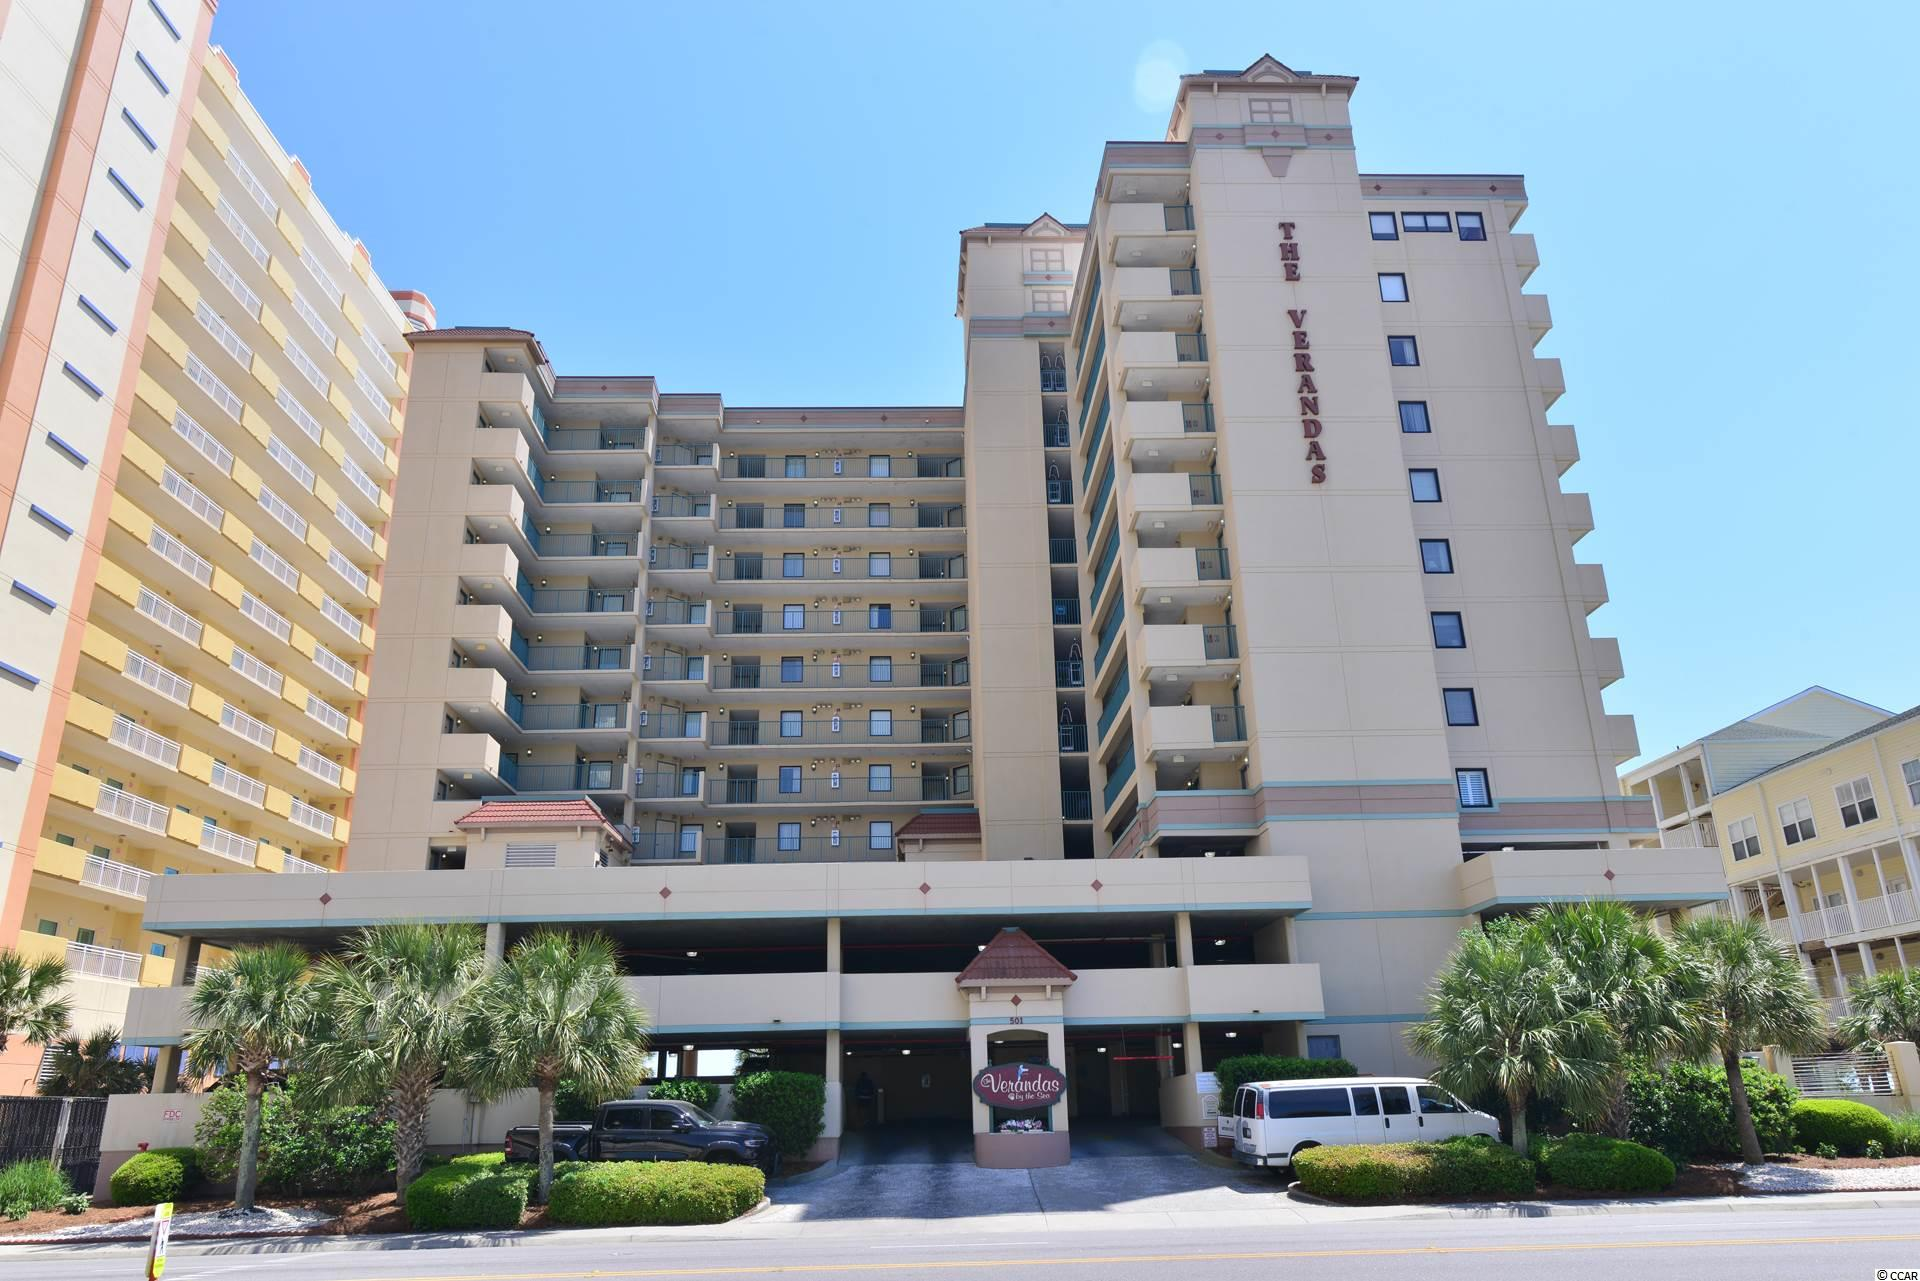 Don't miss out on this one!  It's next to impossible to find a condo in an ocean front building with the amenities offered by The Verandas for this price!  Swimming pool and lazy river, parking deck, elevator, private beach access and walking distance to Main St--and lower HOA fees than most condo complexes.  Here's a condo that is perfect for someone's weekend retreat, but it actually served well as a primary residence for the present owner.  The heat pump units have both been replaced in the last 3 years.  This unit is set up with the entrance at the bedroom and the balcony off the living area--but simply rearrange the furniture to have entrance at the living area and the balcony off the bedroom if that's your preference.  Make an appointment to see it today!